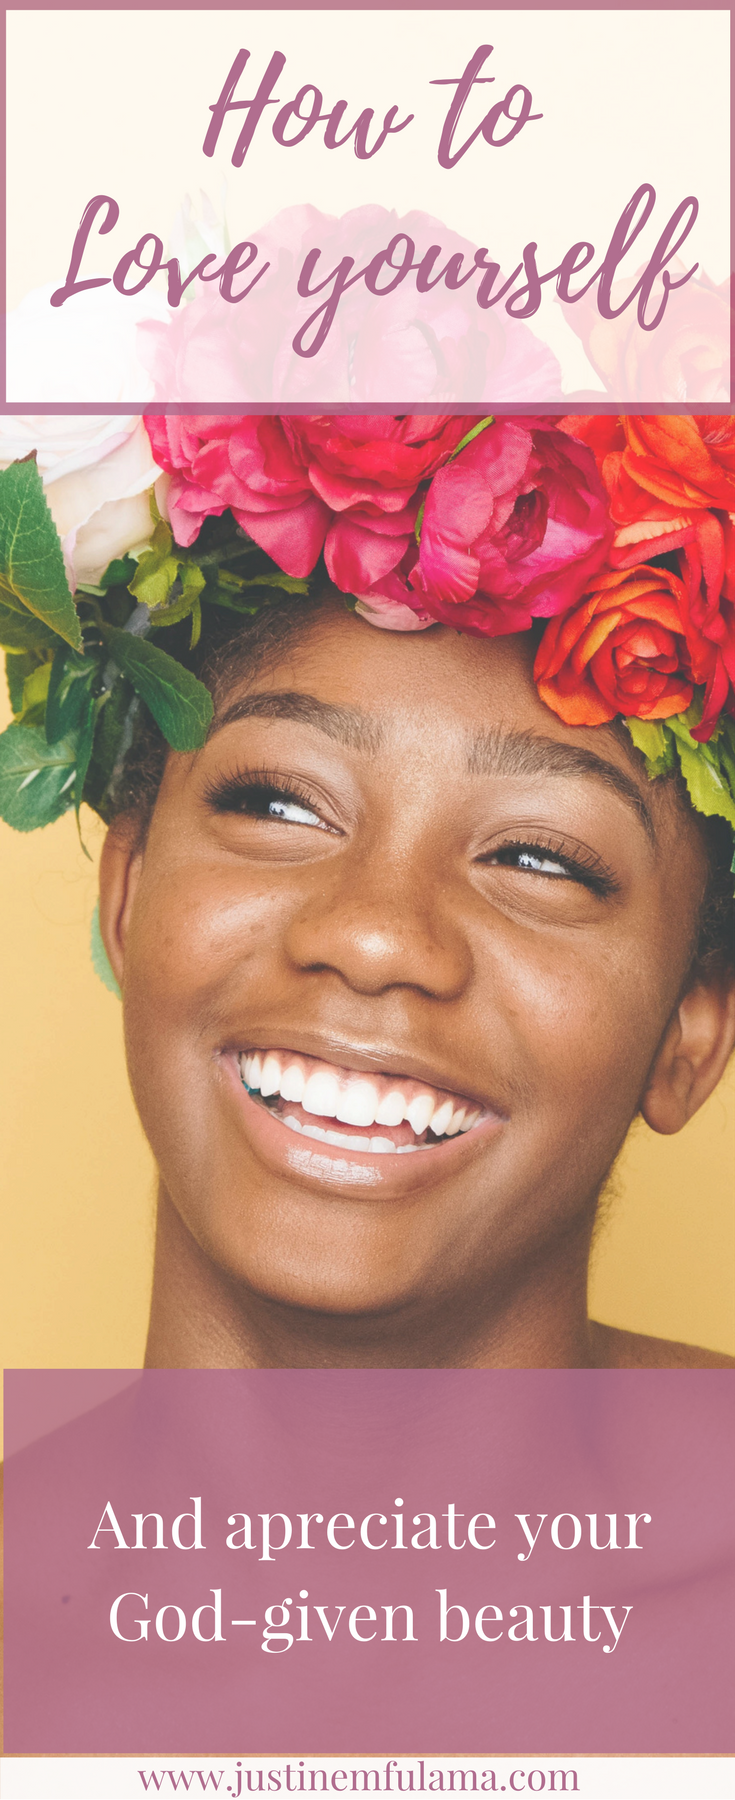 How to love yourself and appreciate your God-given beauty